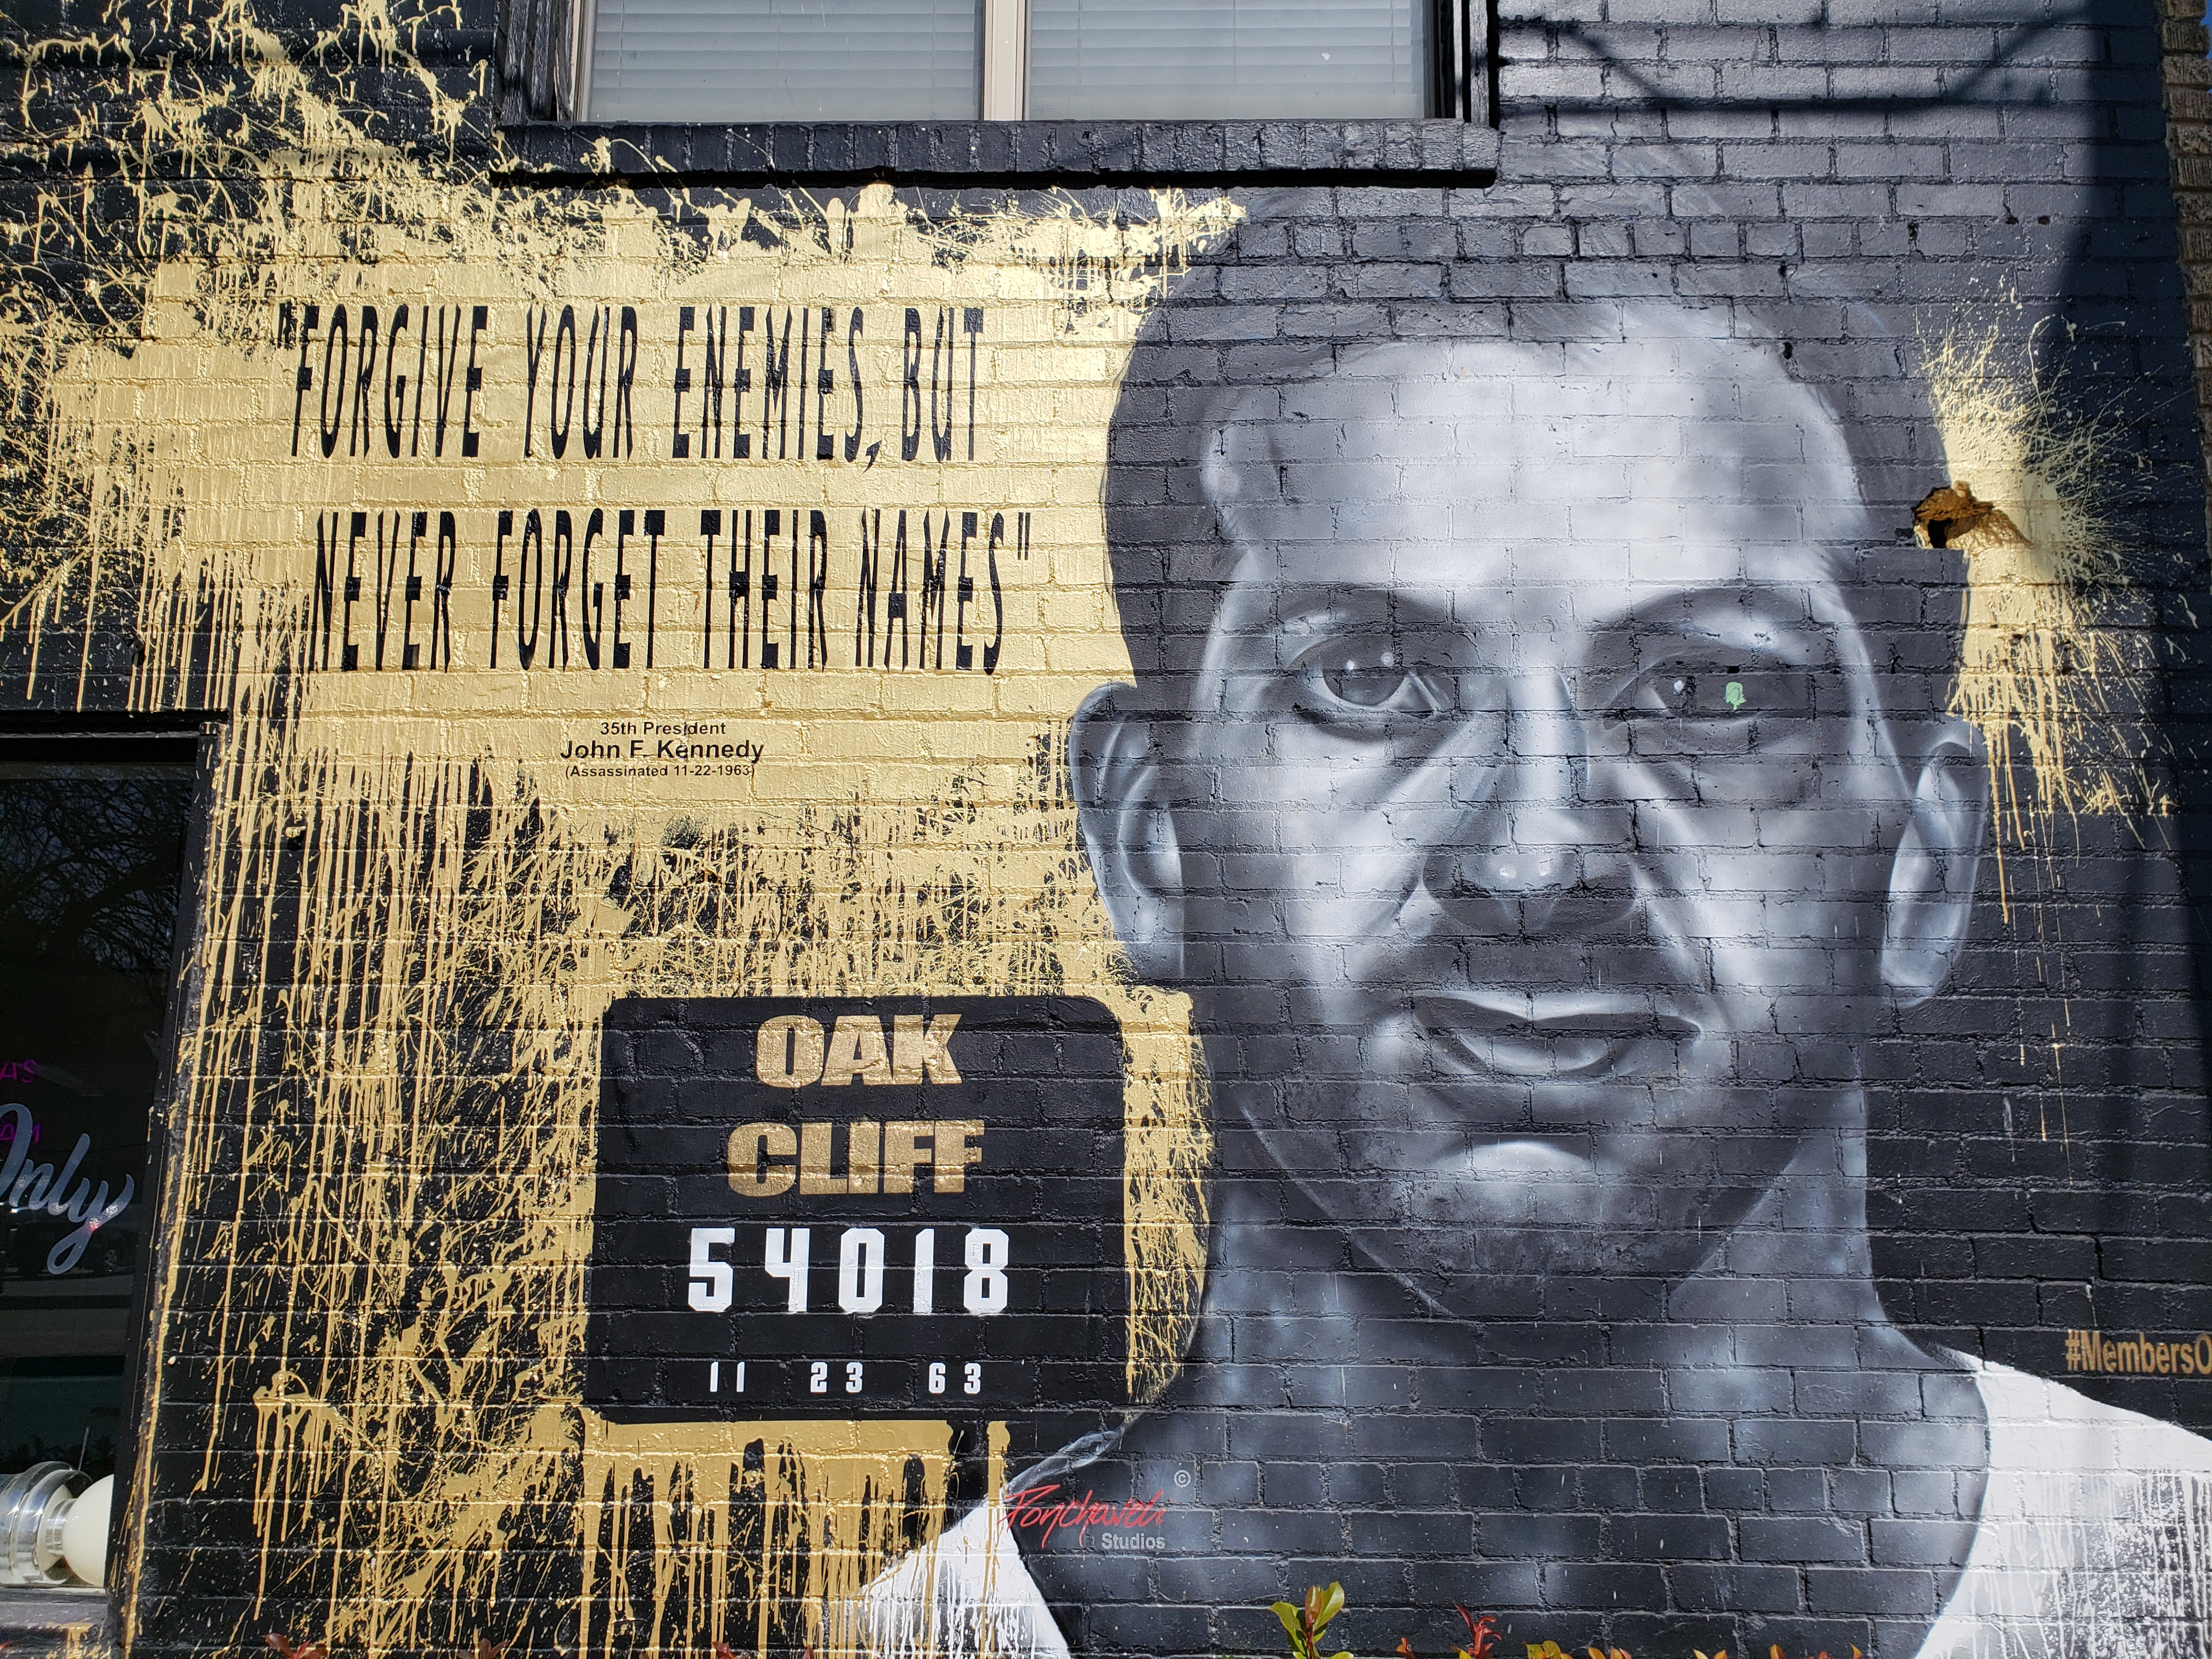 The Members Only barbershop in Oak Cliff now features a black and white portrait of Oswald on the side of the building at West 7th Street and North Madison Ave.